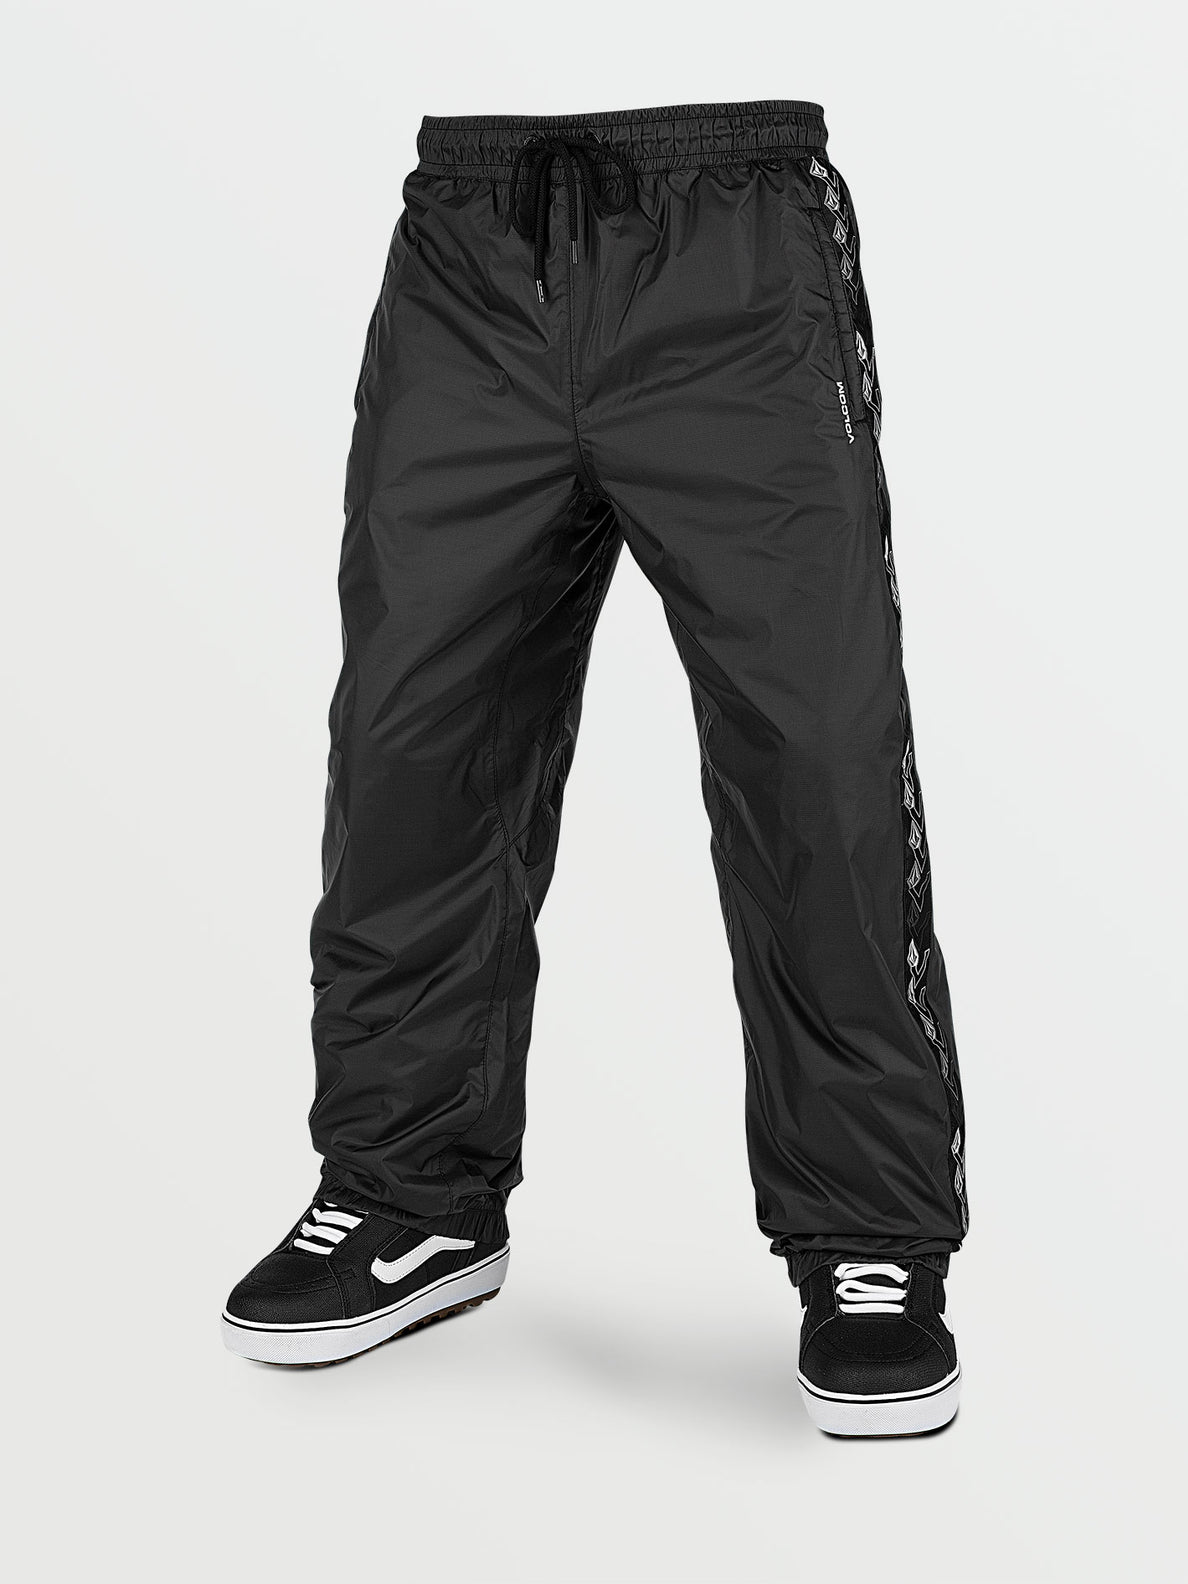 SLASHLAPPER PANT - BLACK (G1352110_BLK) [F]